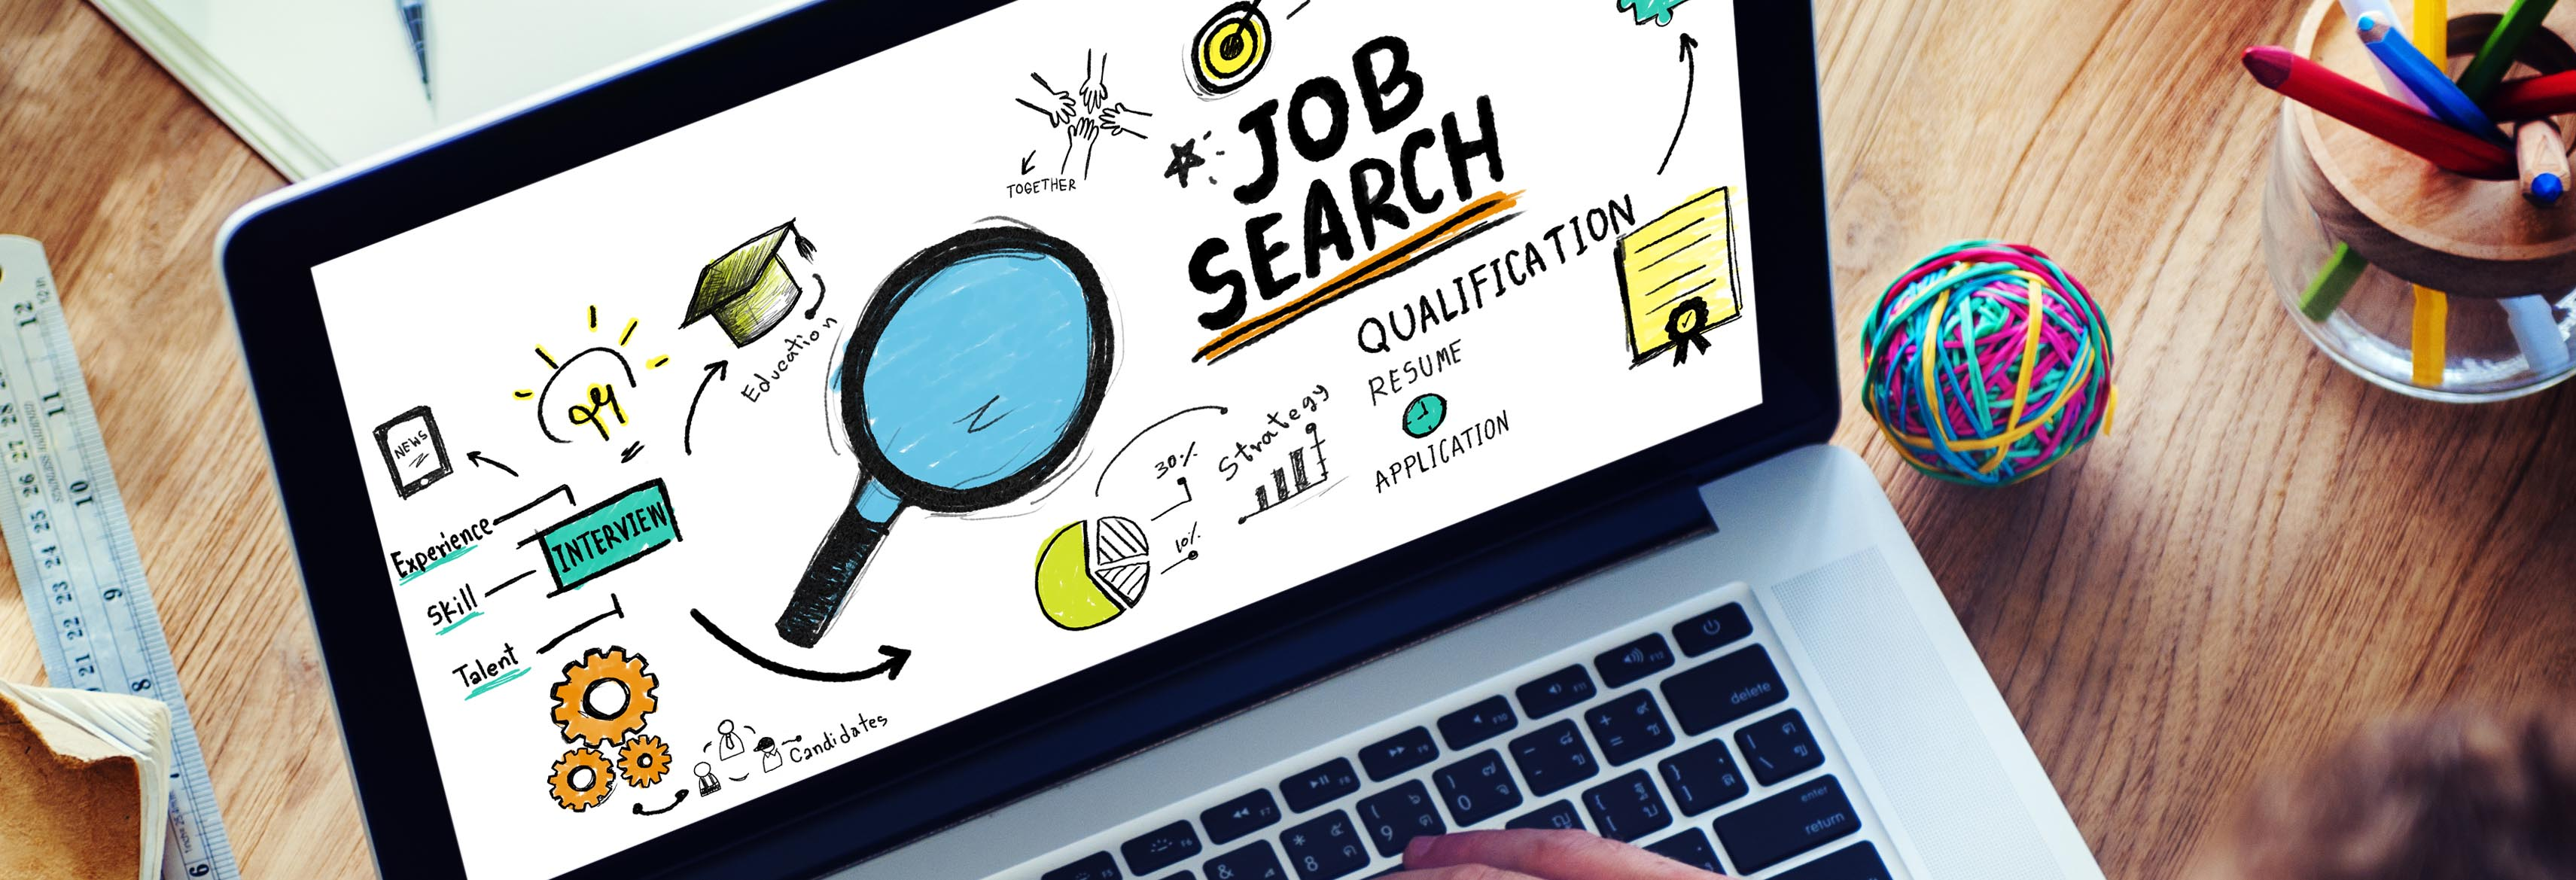 Online Job Search >> Free Leads For Your Online Job Search Telecommute And